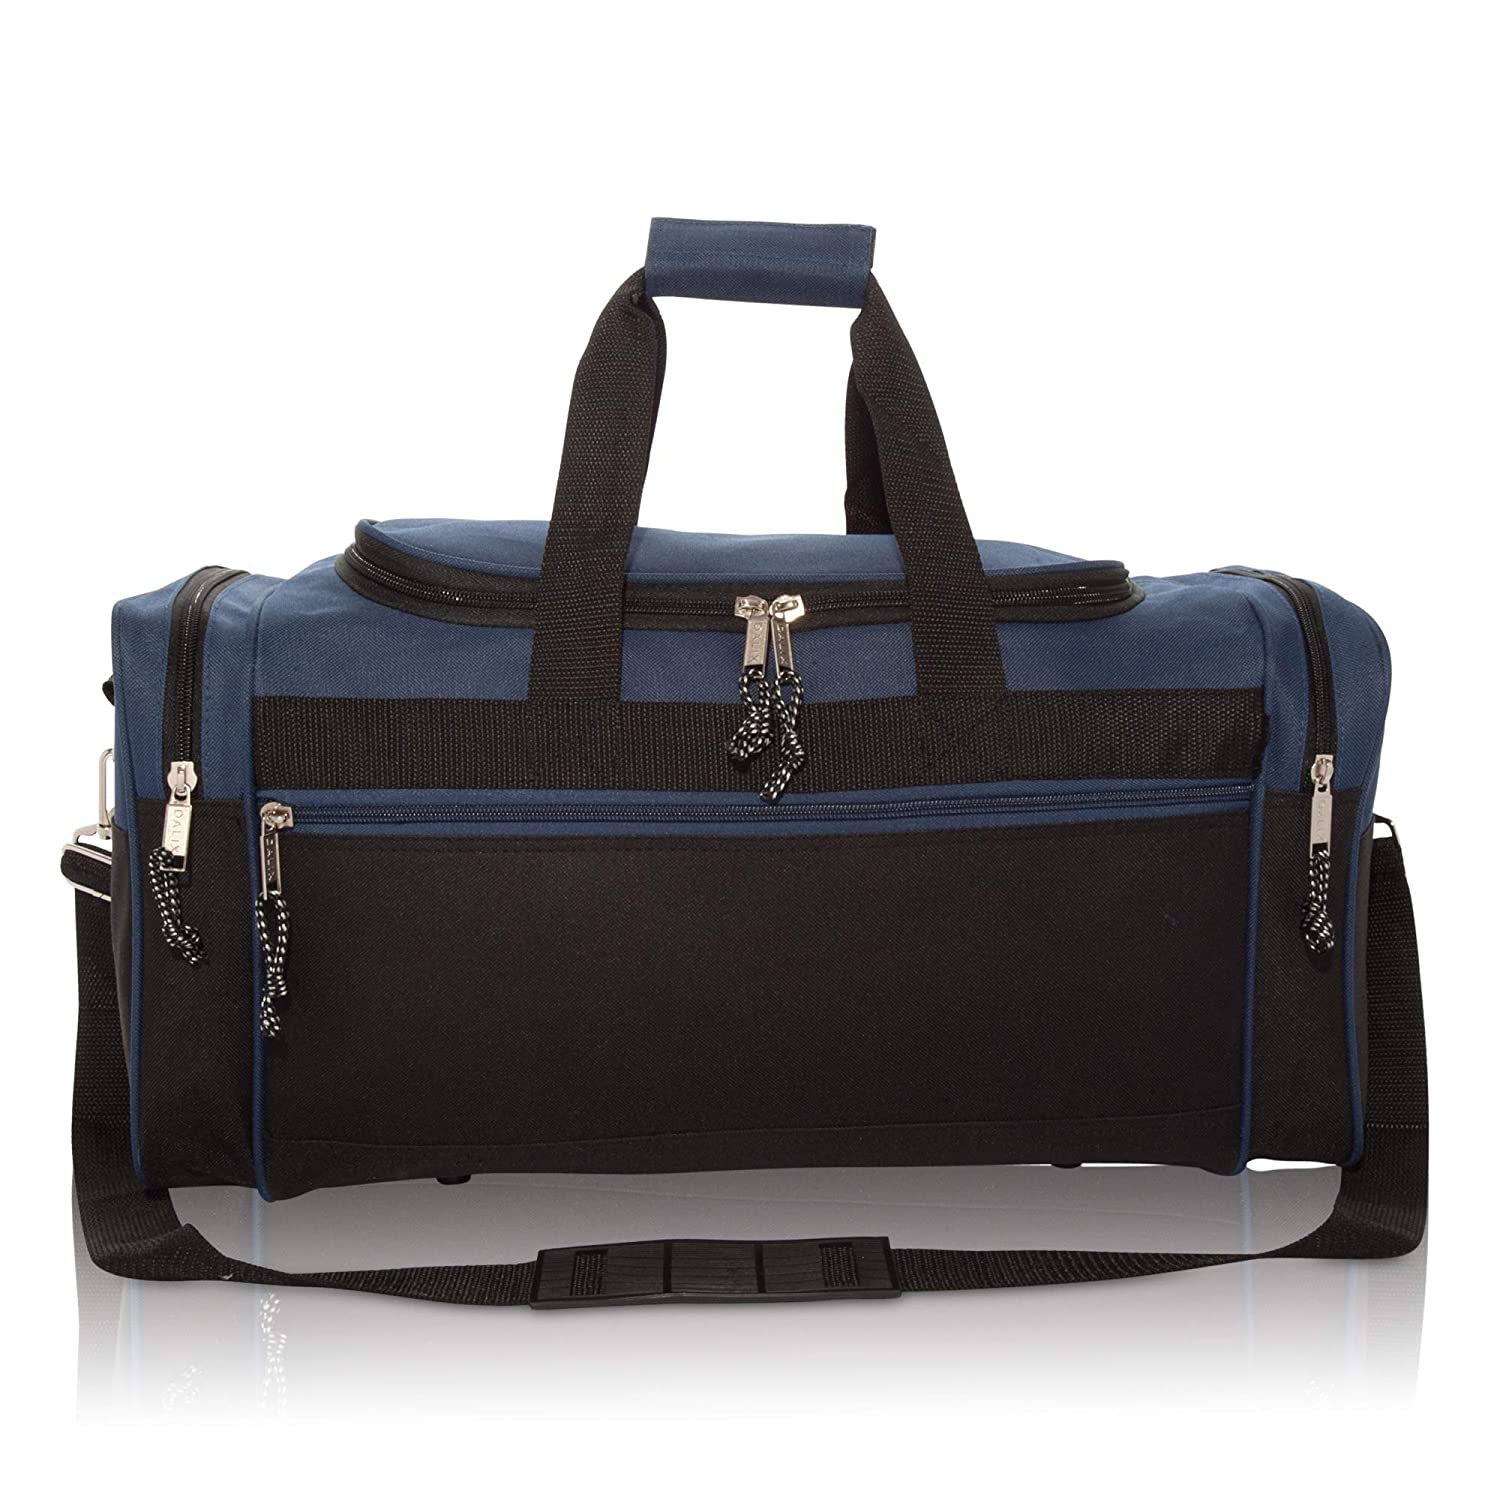 DALIX 19 Blank Sports Duffle Bag Gym Bag Travel with Adjustable Strap in Gray